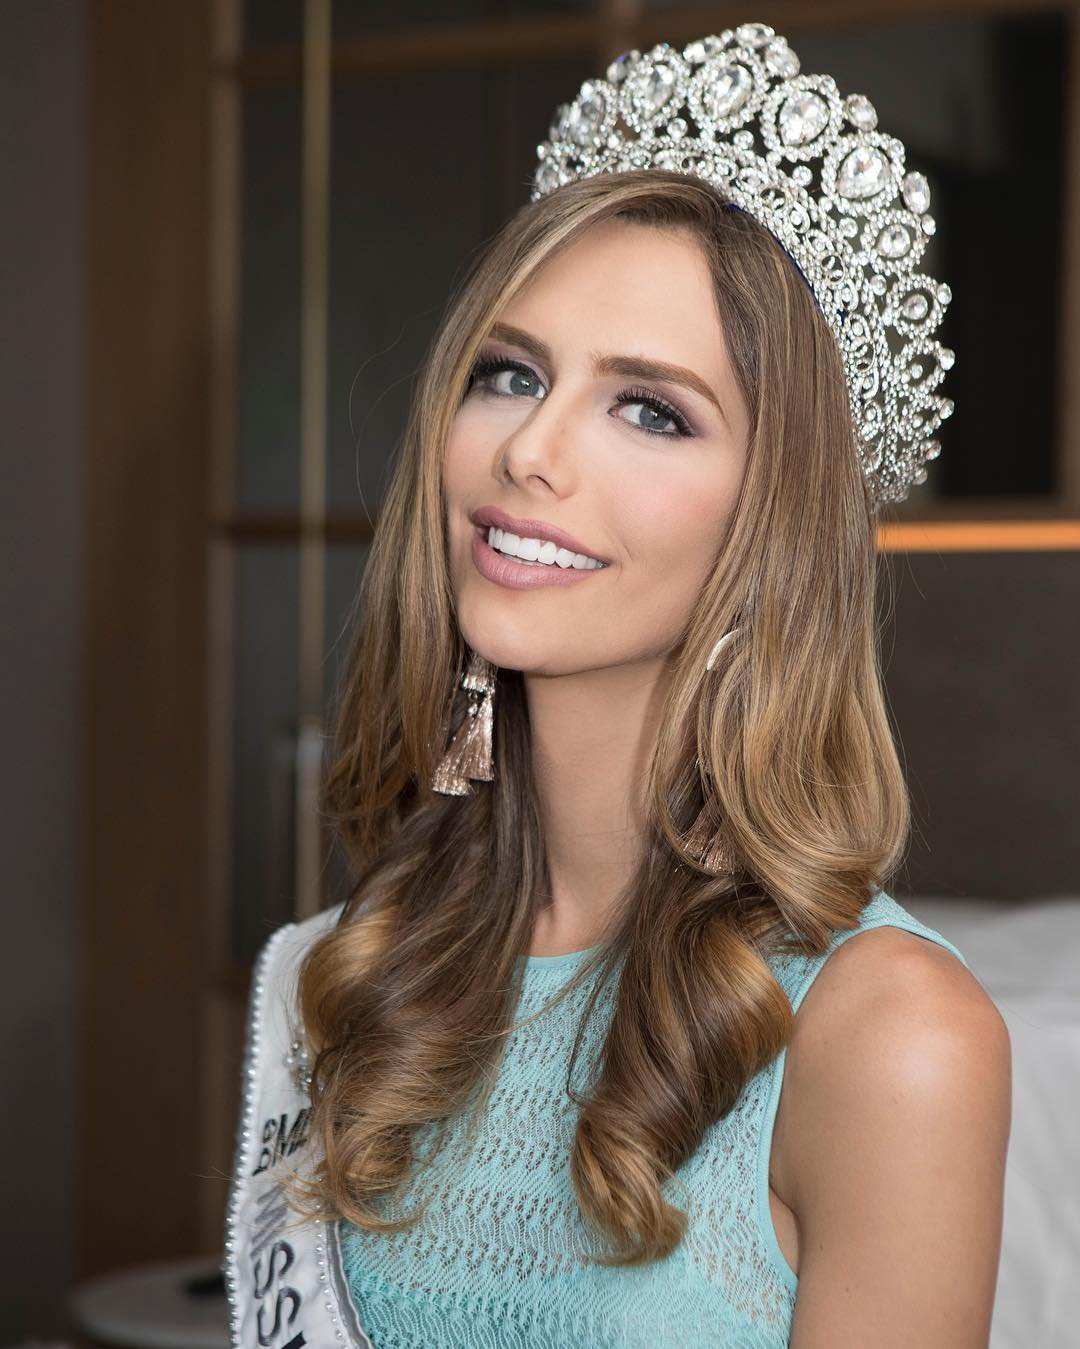 Miss Spain is first Transgender Miss Universe Contestant